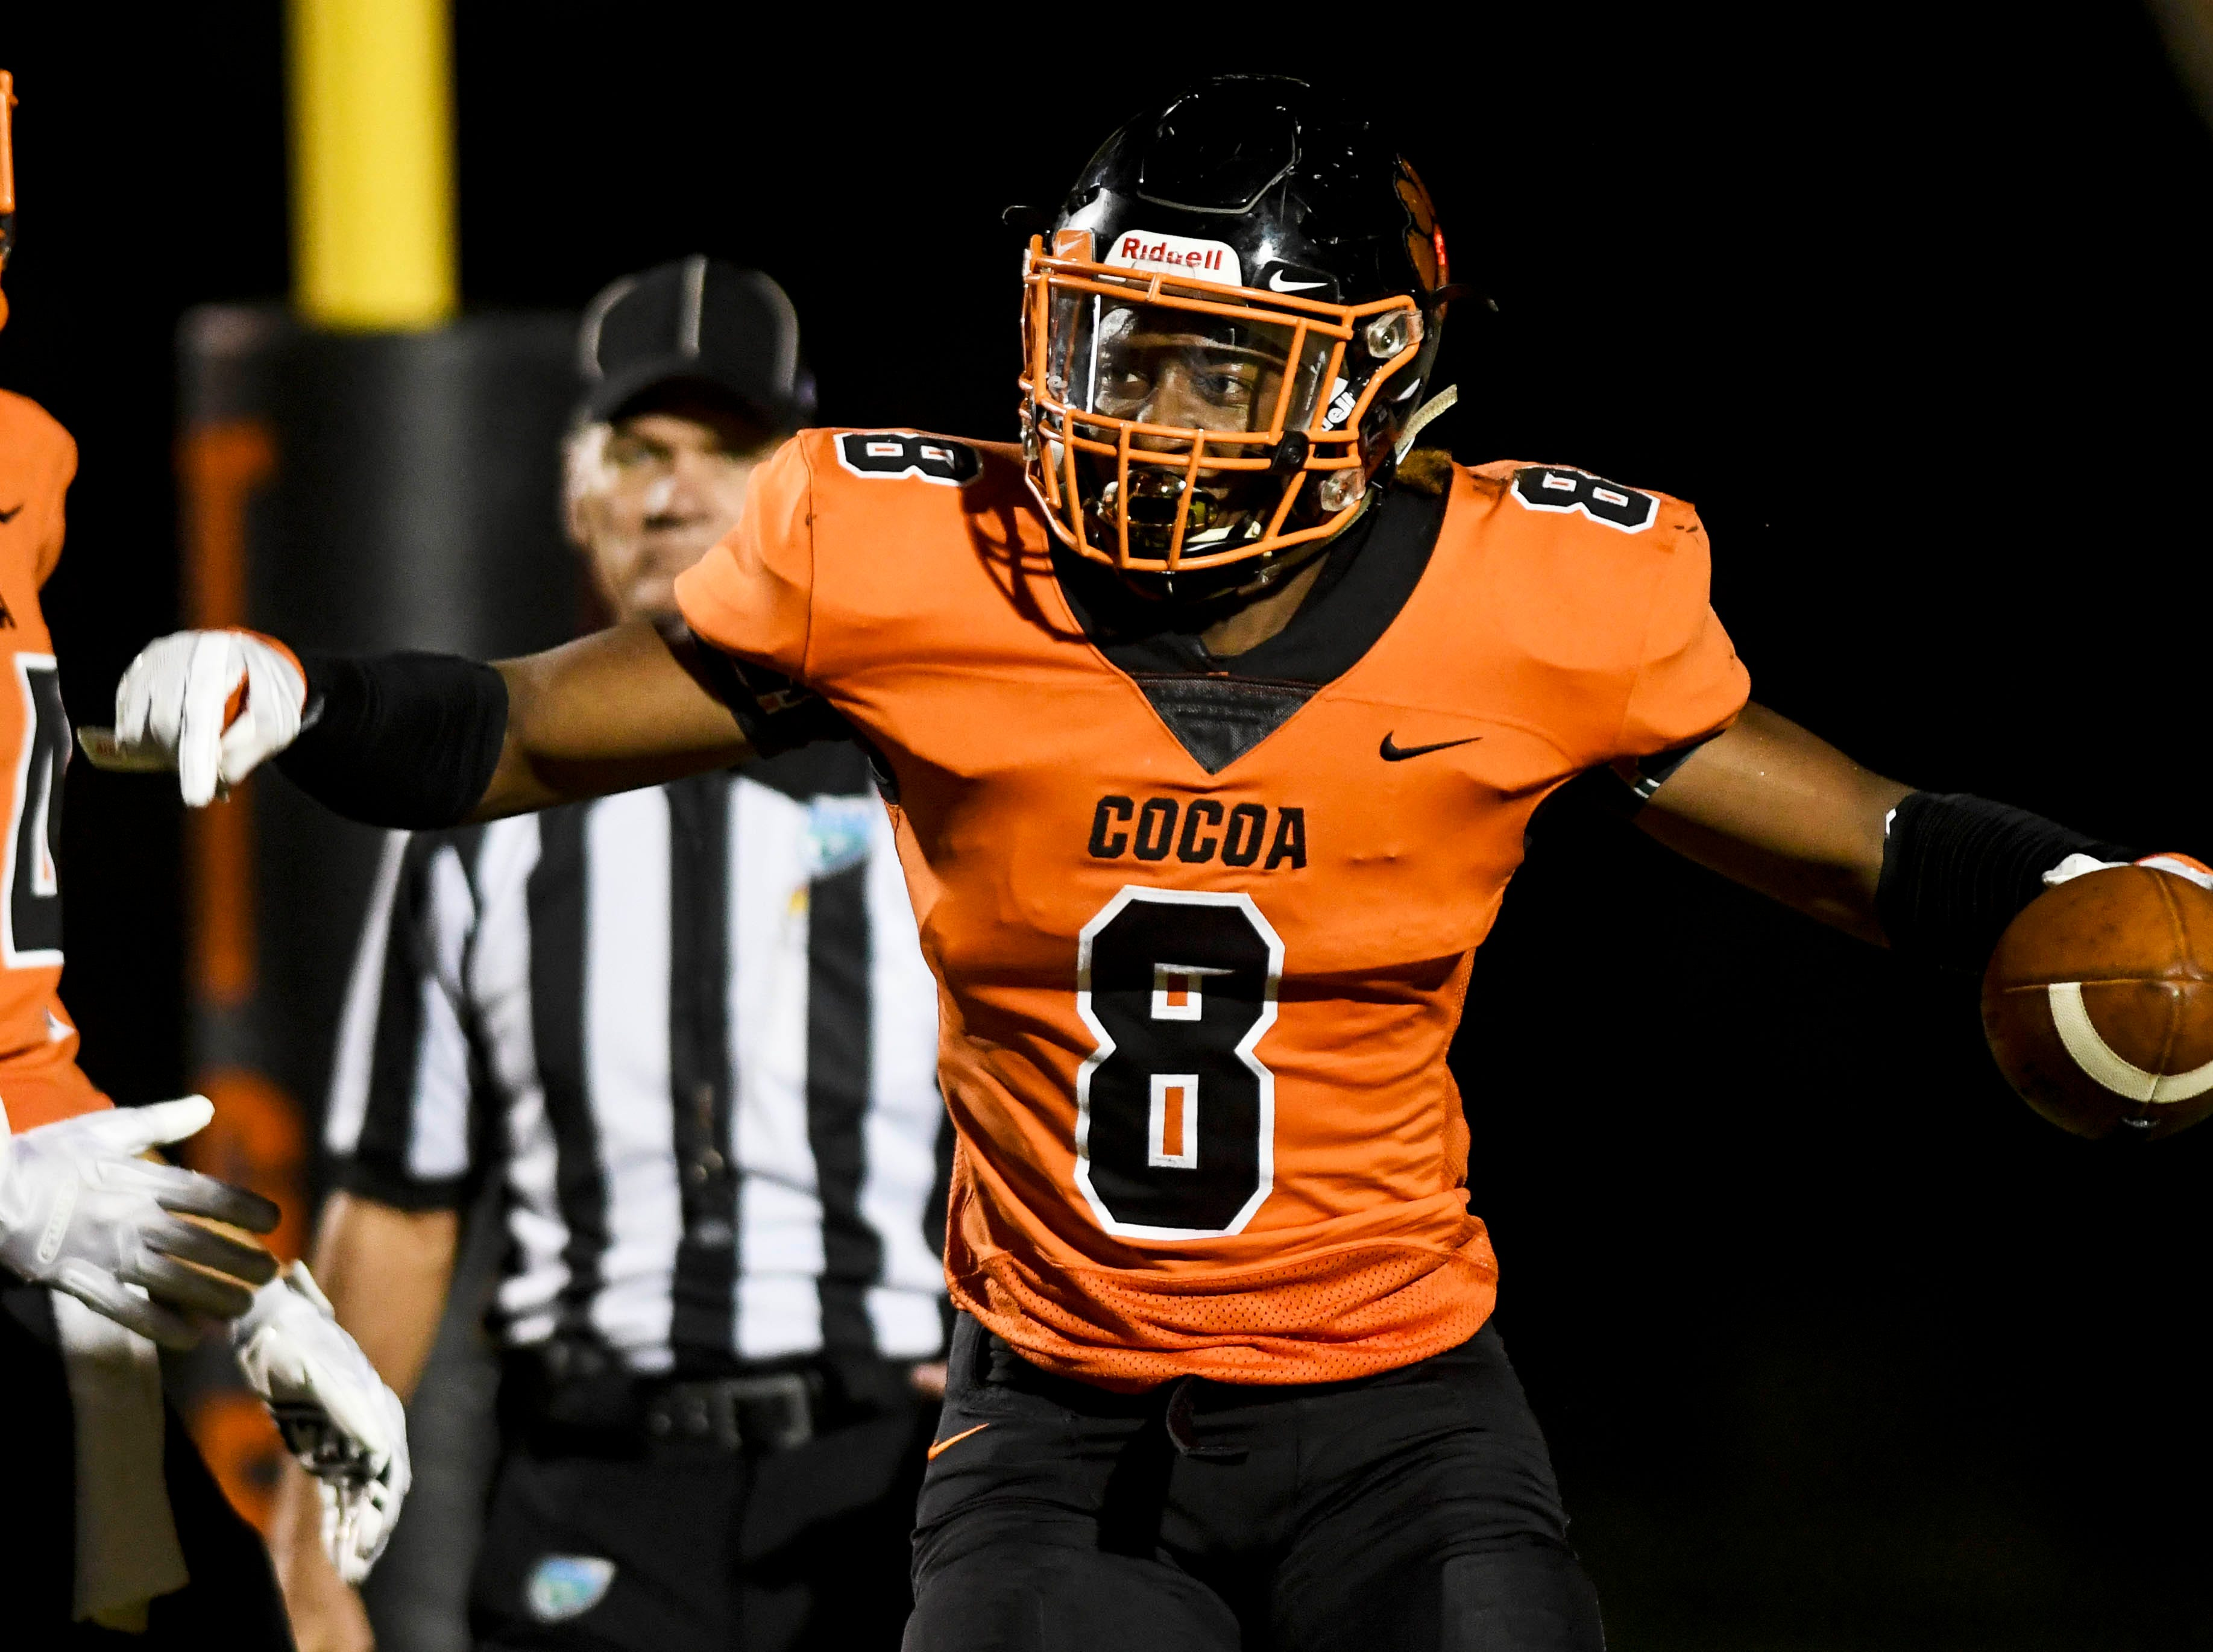 Caziah Holmes of Cocoa celebrates a touchdown during Friday's game.